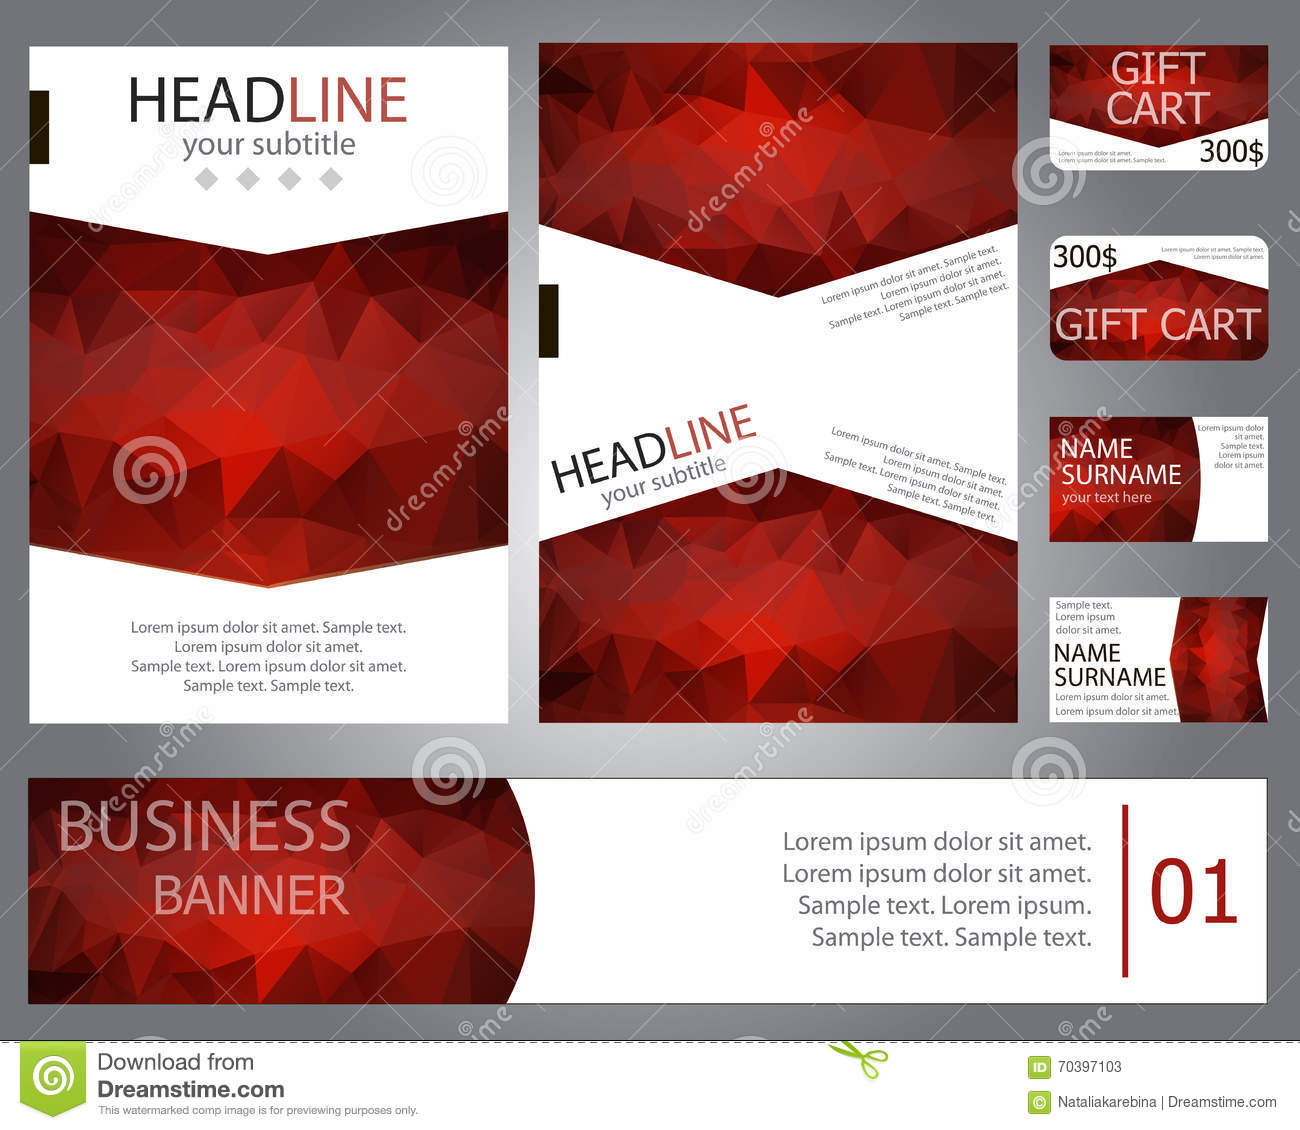 Templates Brochure Design, Banner, Gift Cards, Business Cards. Stock ...